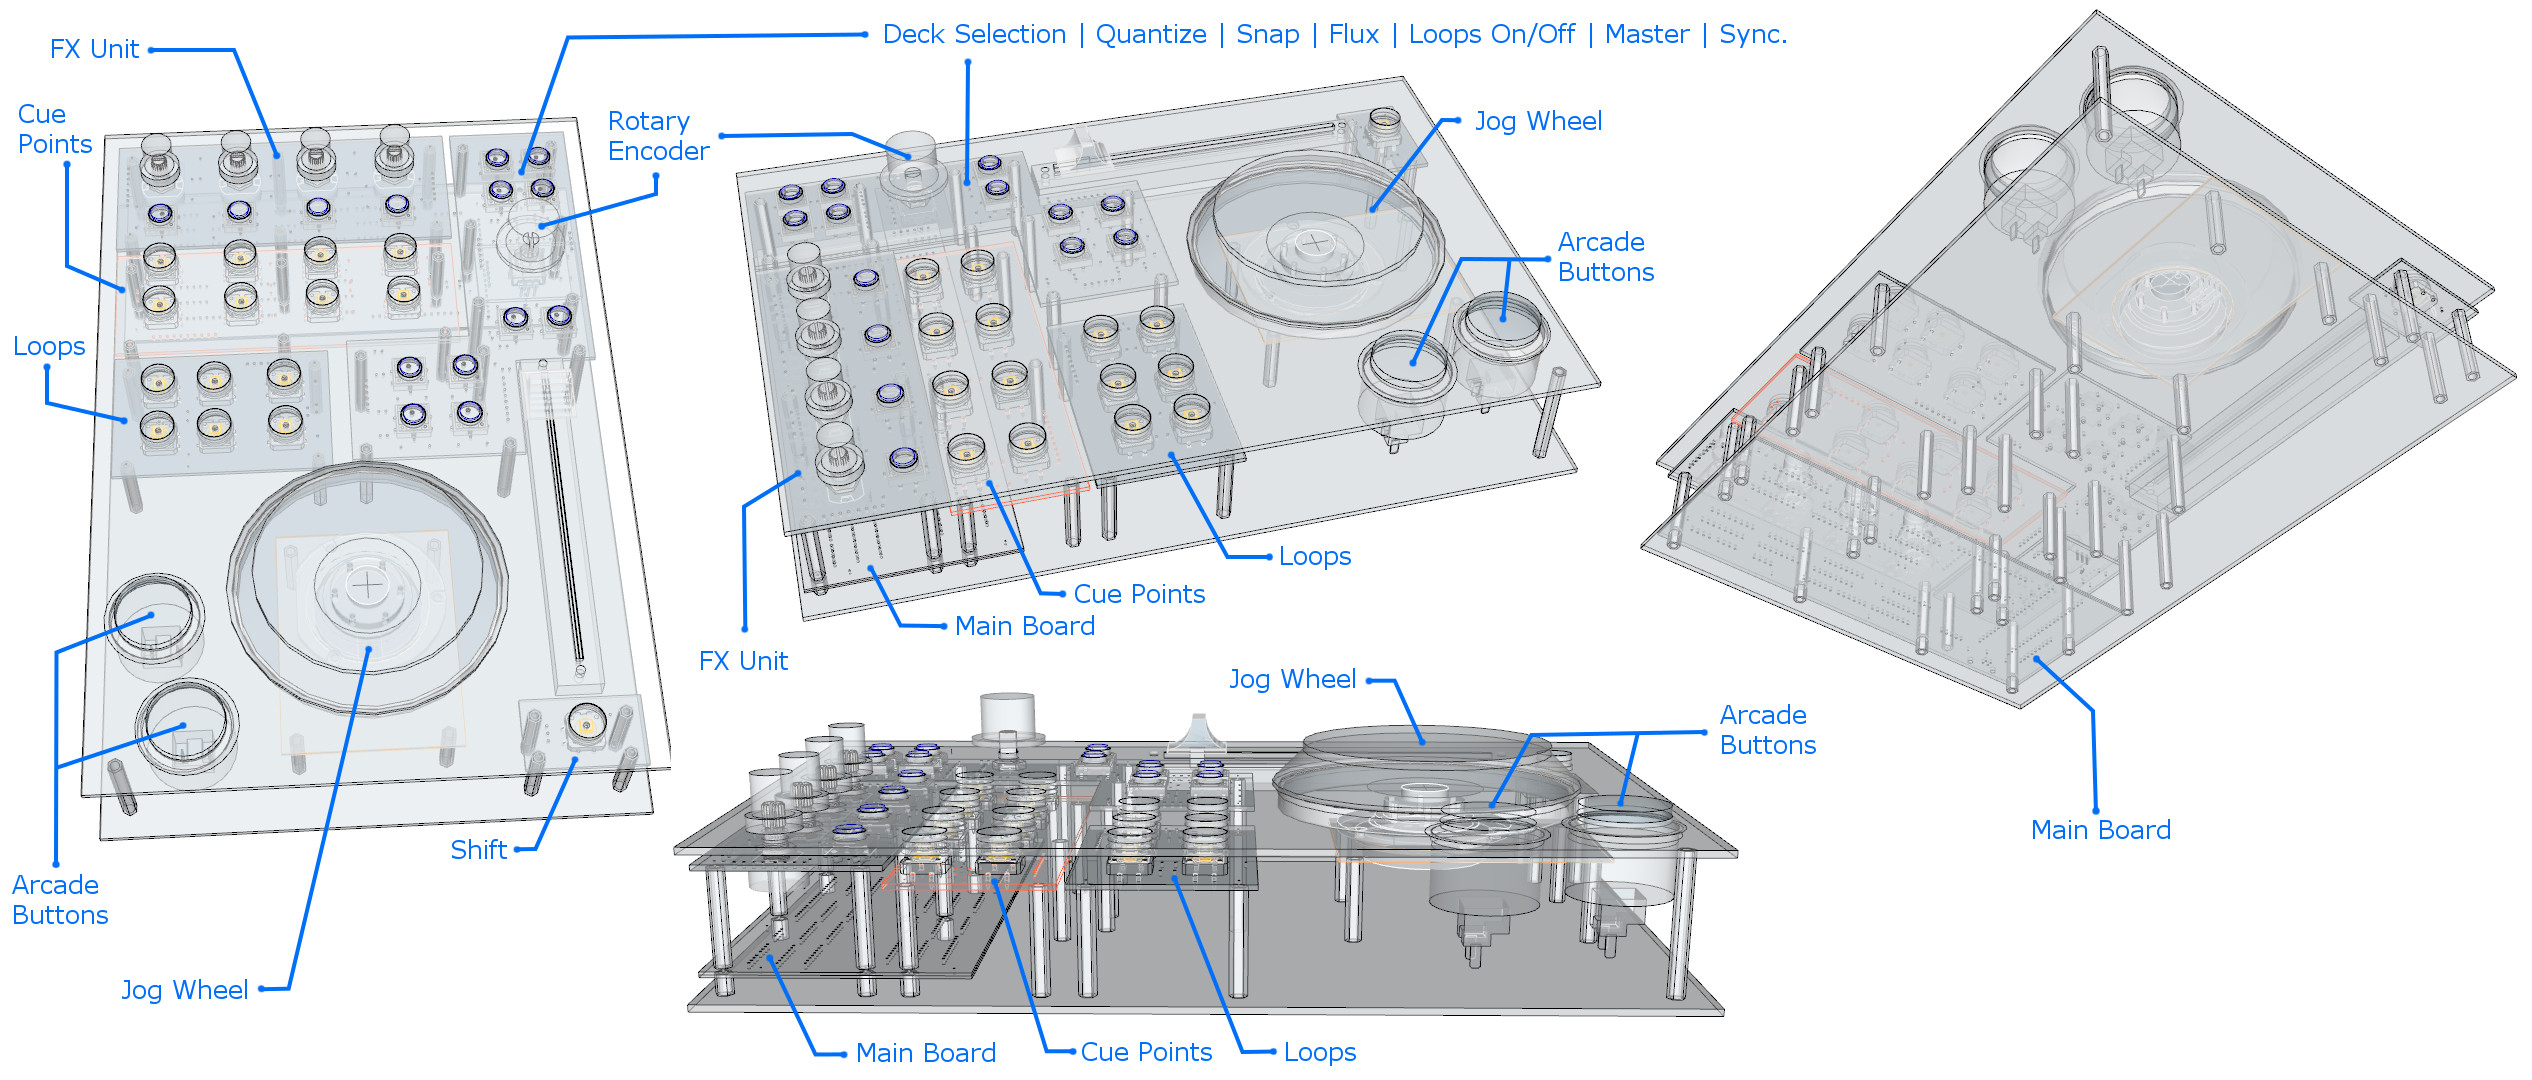 Design of DIY MIDI DJ Deck controller - Google sketchup design of the construction with descrition of particular parts